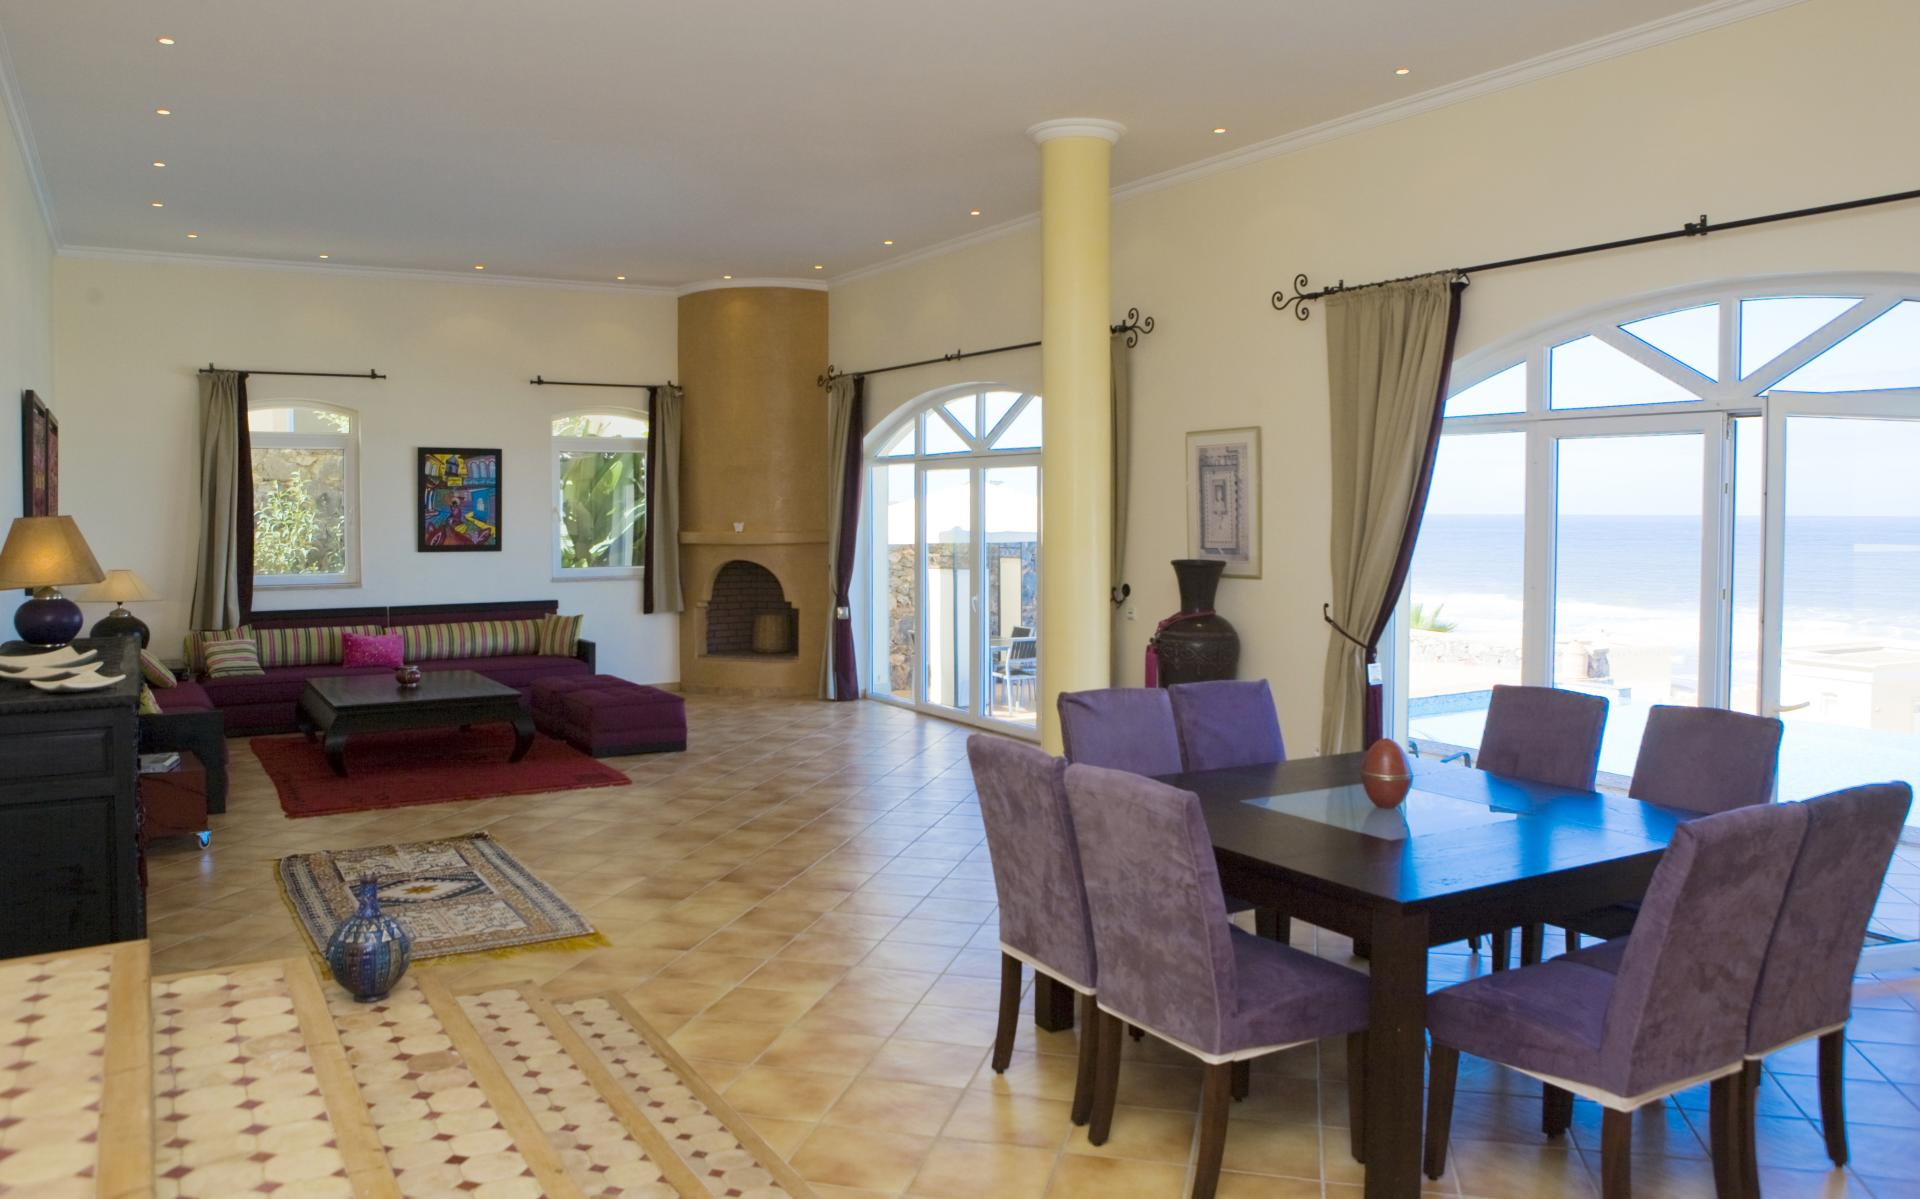 Lounge and Dining Room, Dar Zidana, Agadir, Aglou Plage.